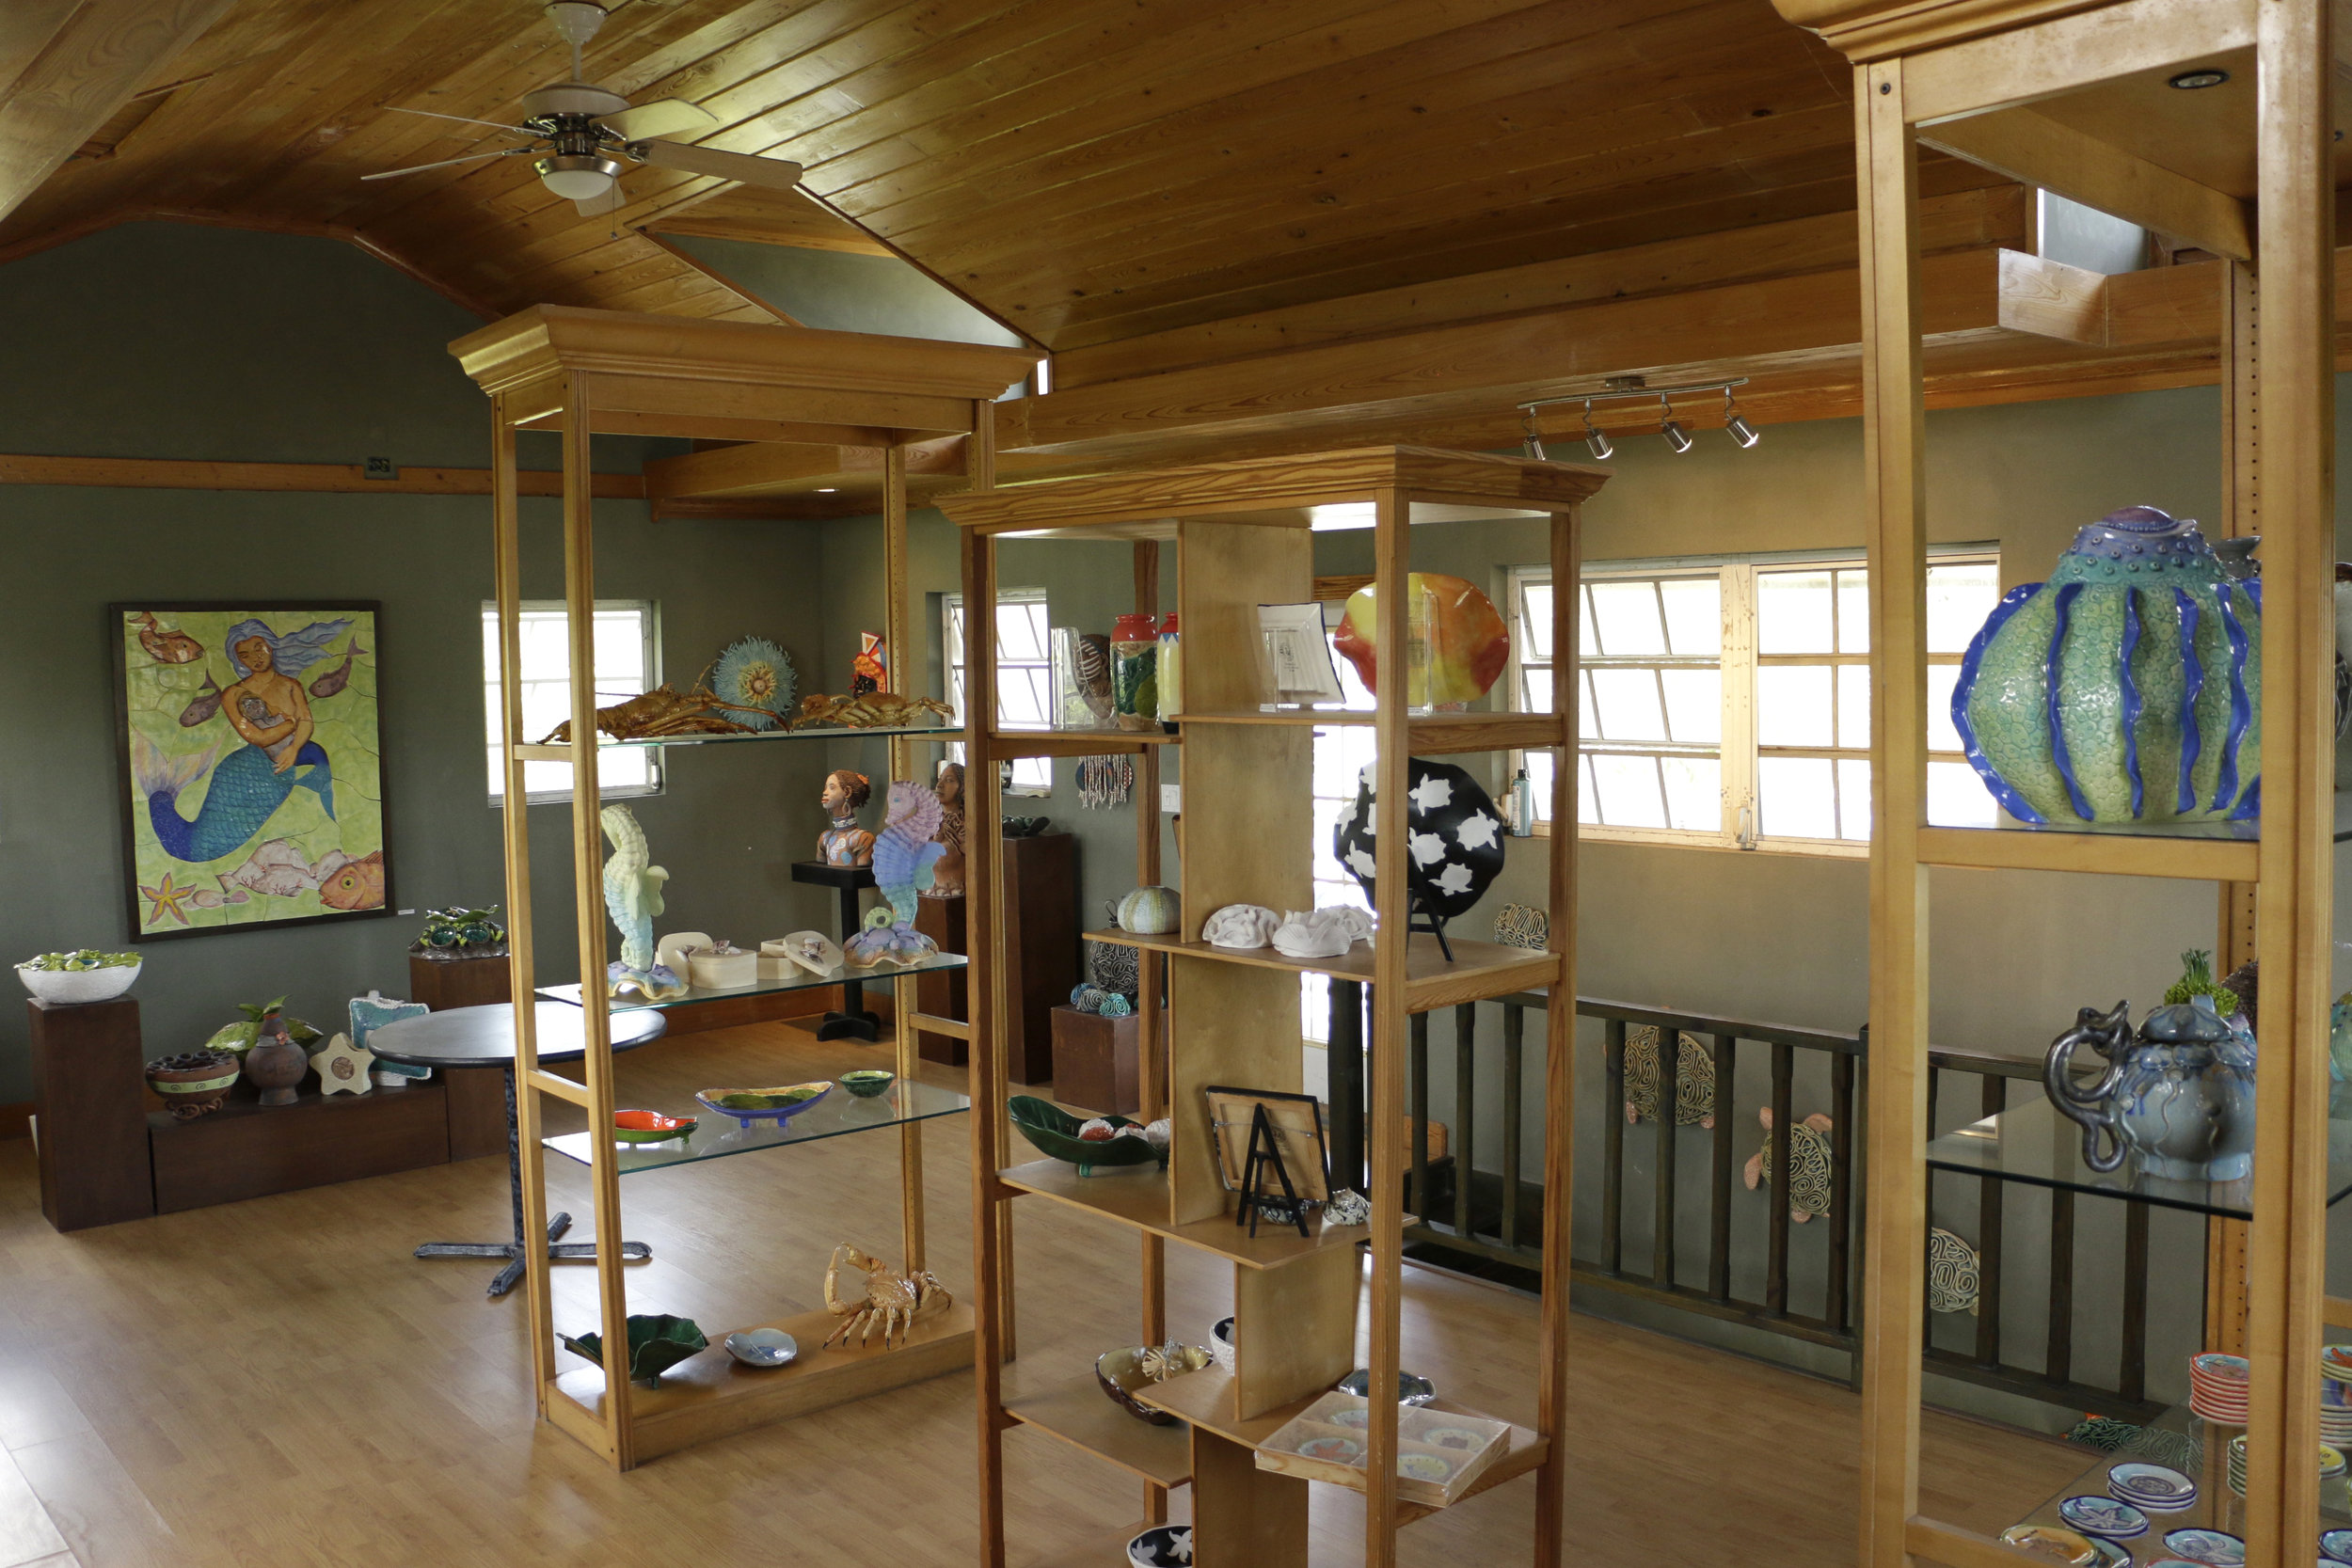 Showcase area and gallery at Jessica's Tileworks Studio (Photo by Keisha Oliver)